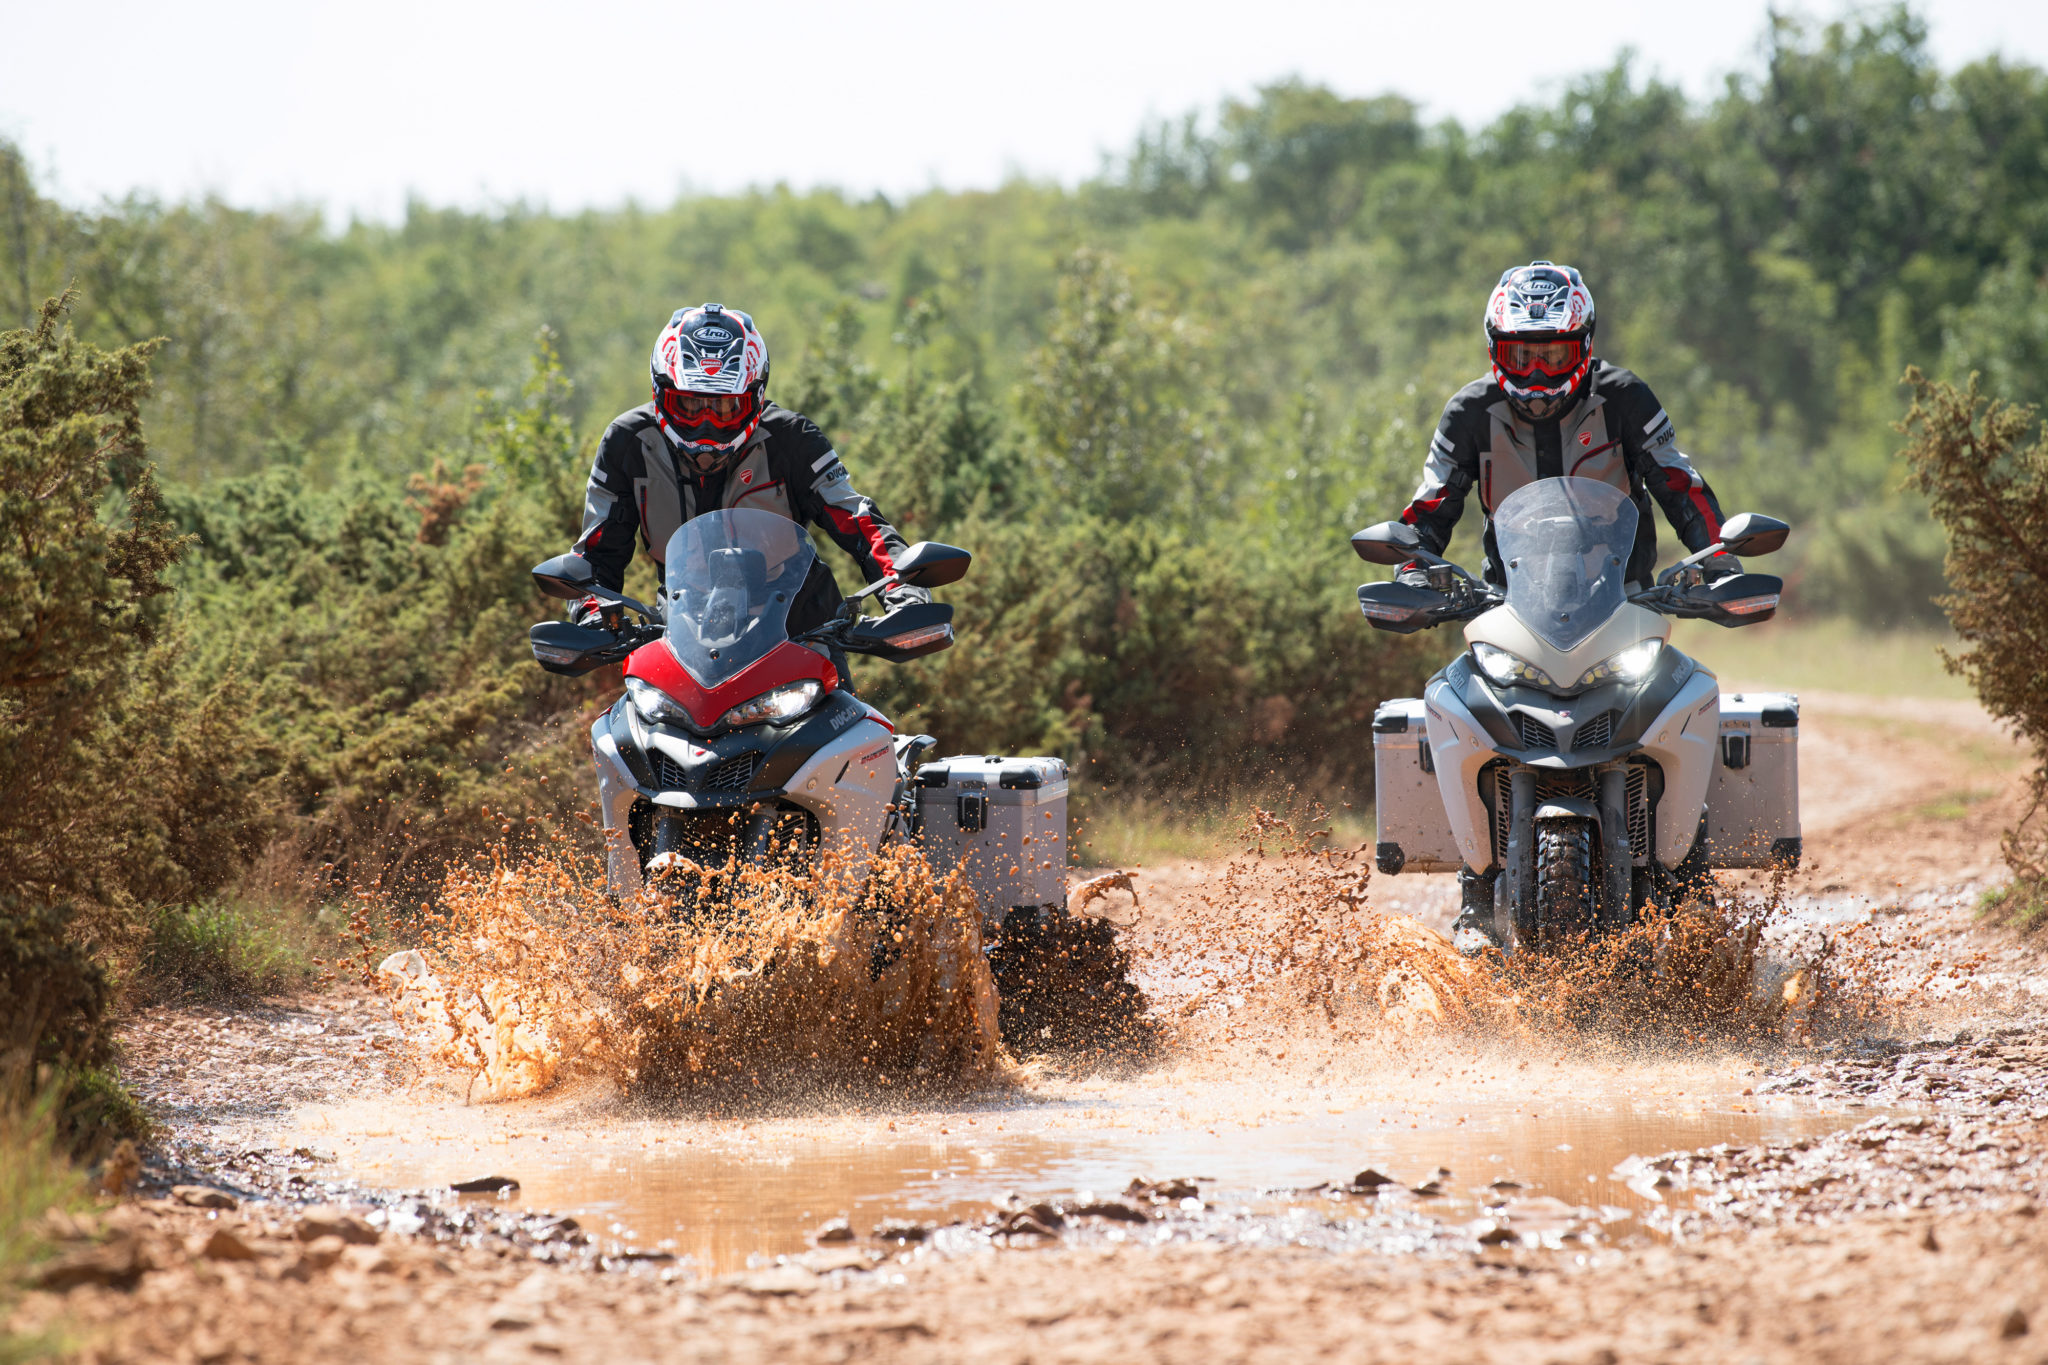 Ducati Multistrada 1260 Enduro: Adventure without limits